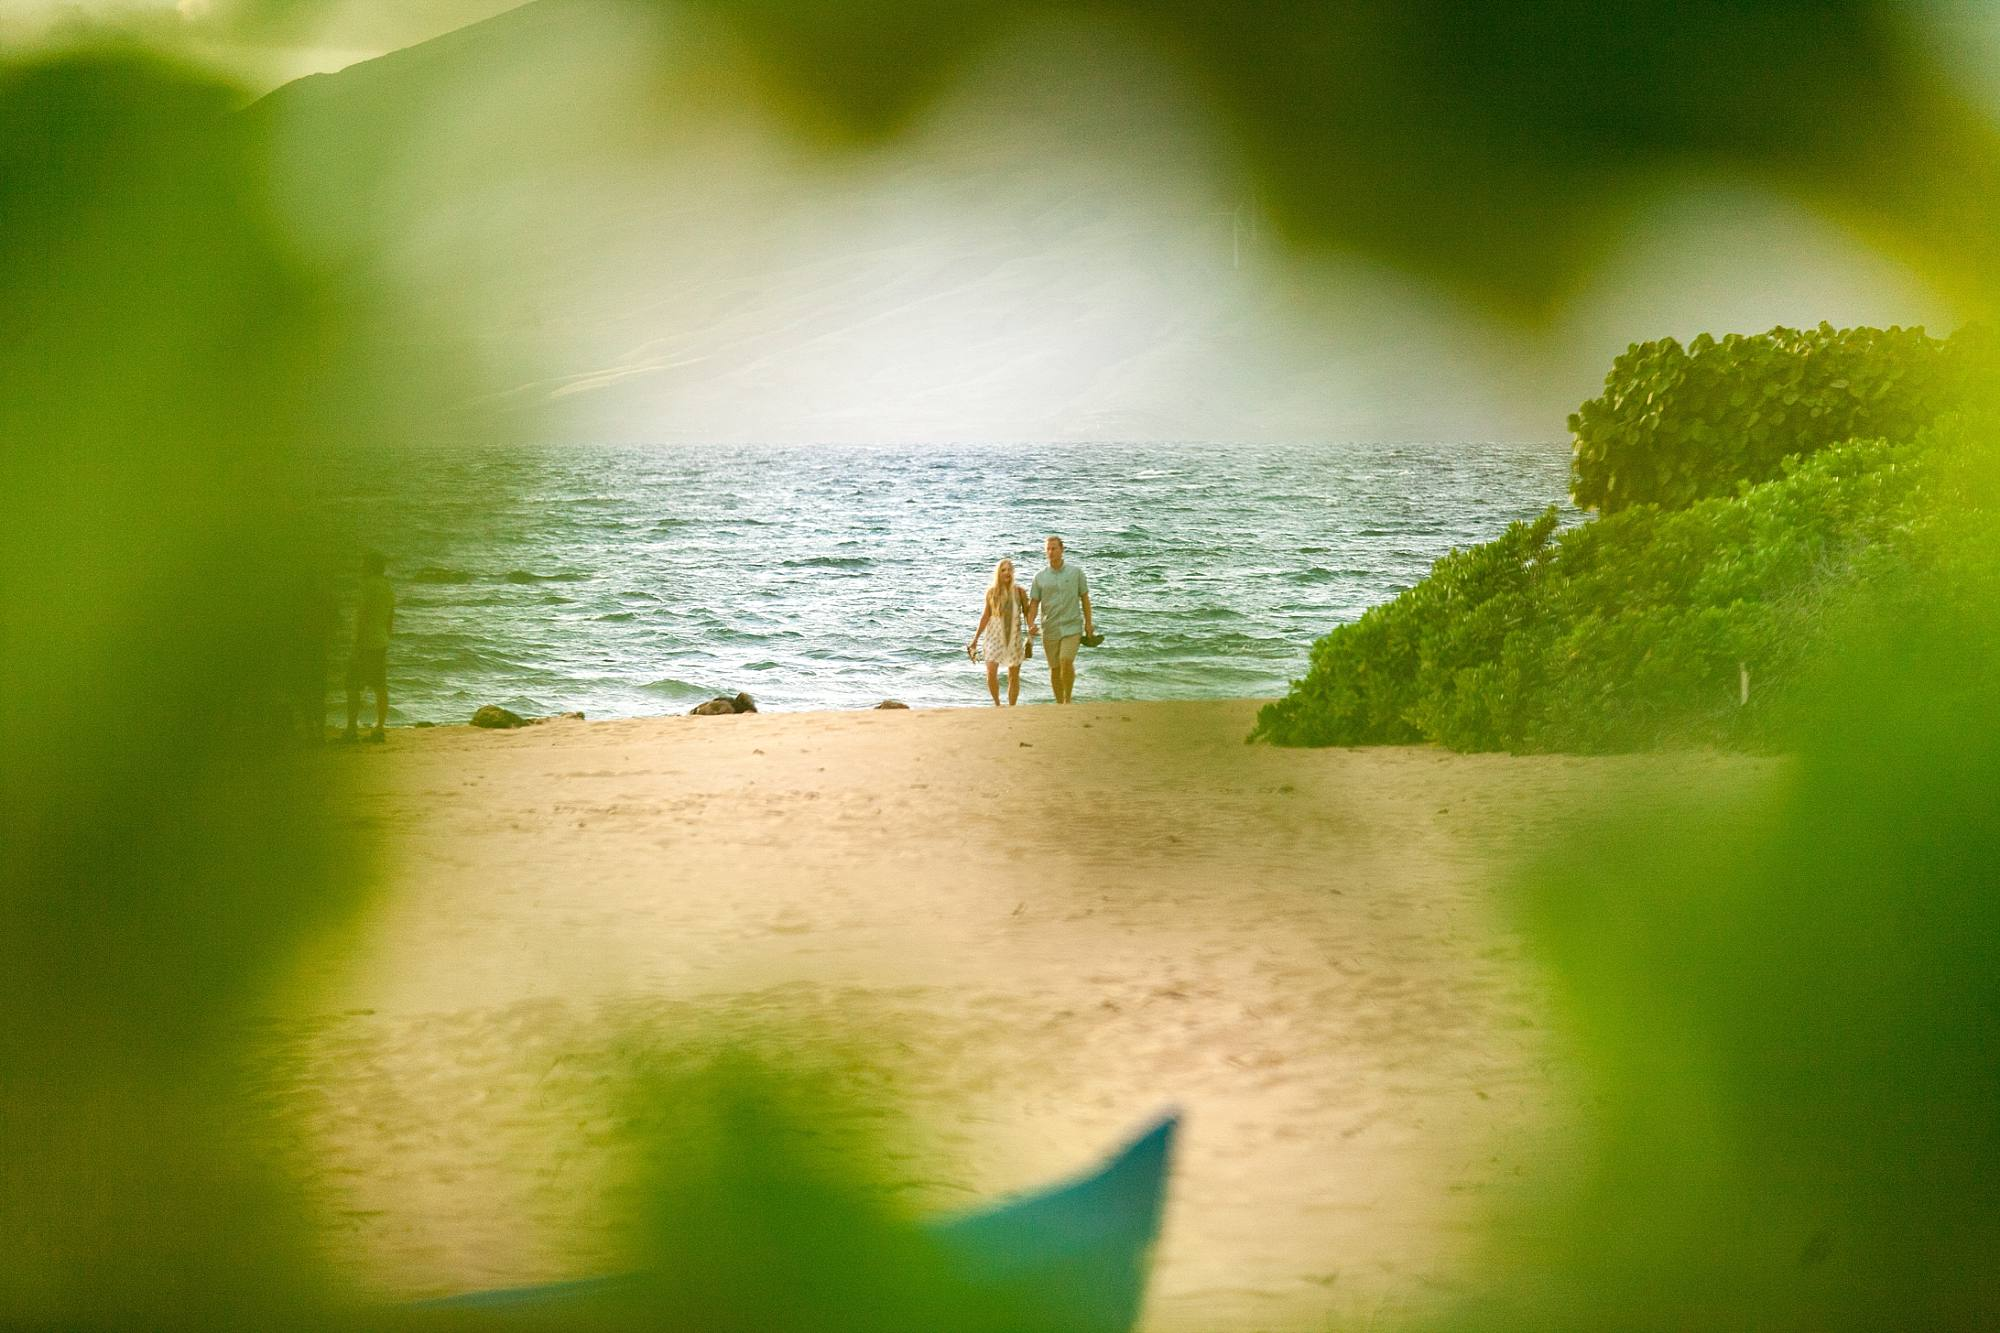 shot framed with greenery as photographer hides in bushes to capture their engagement